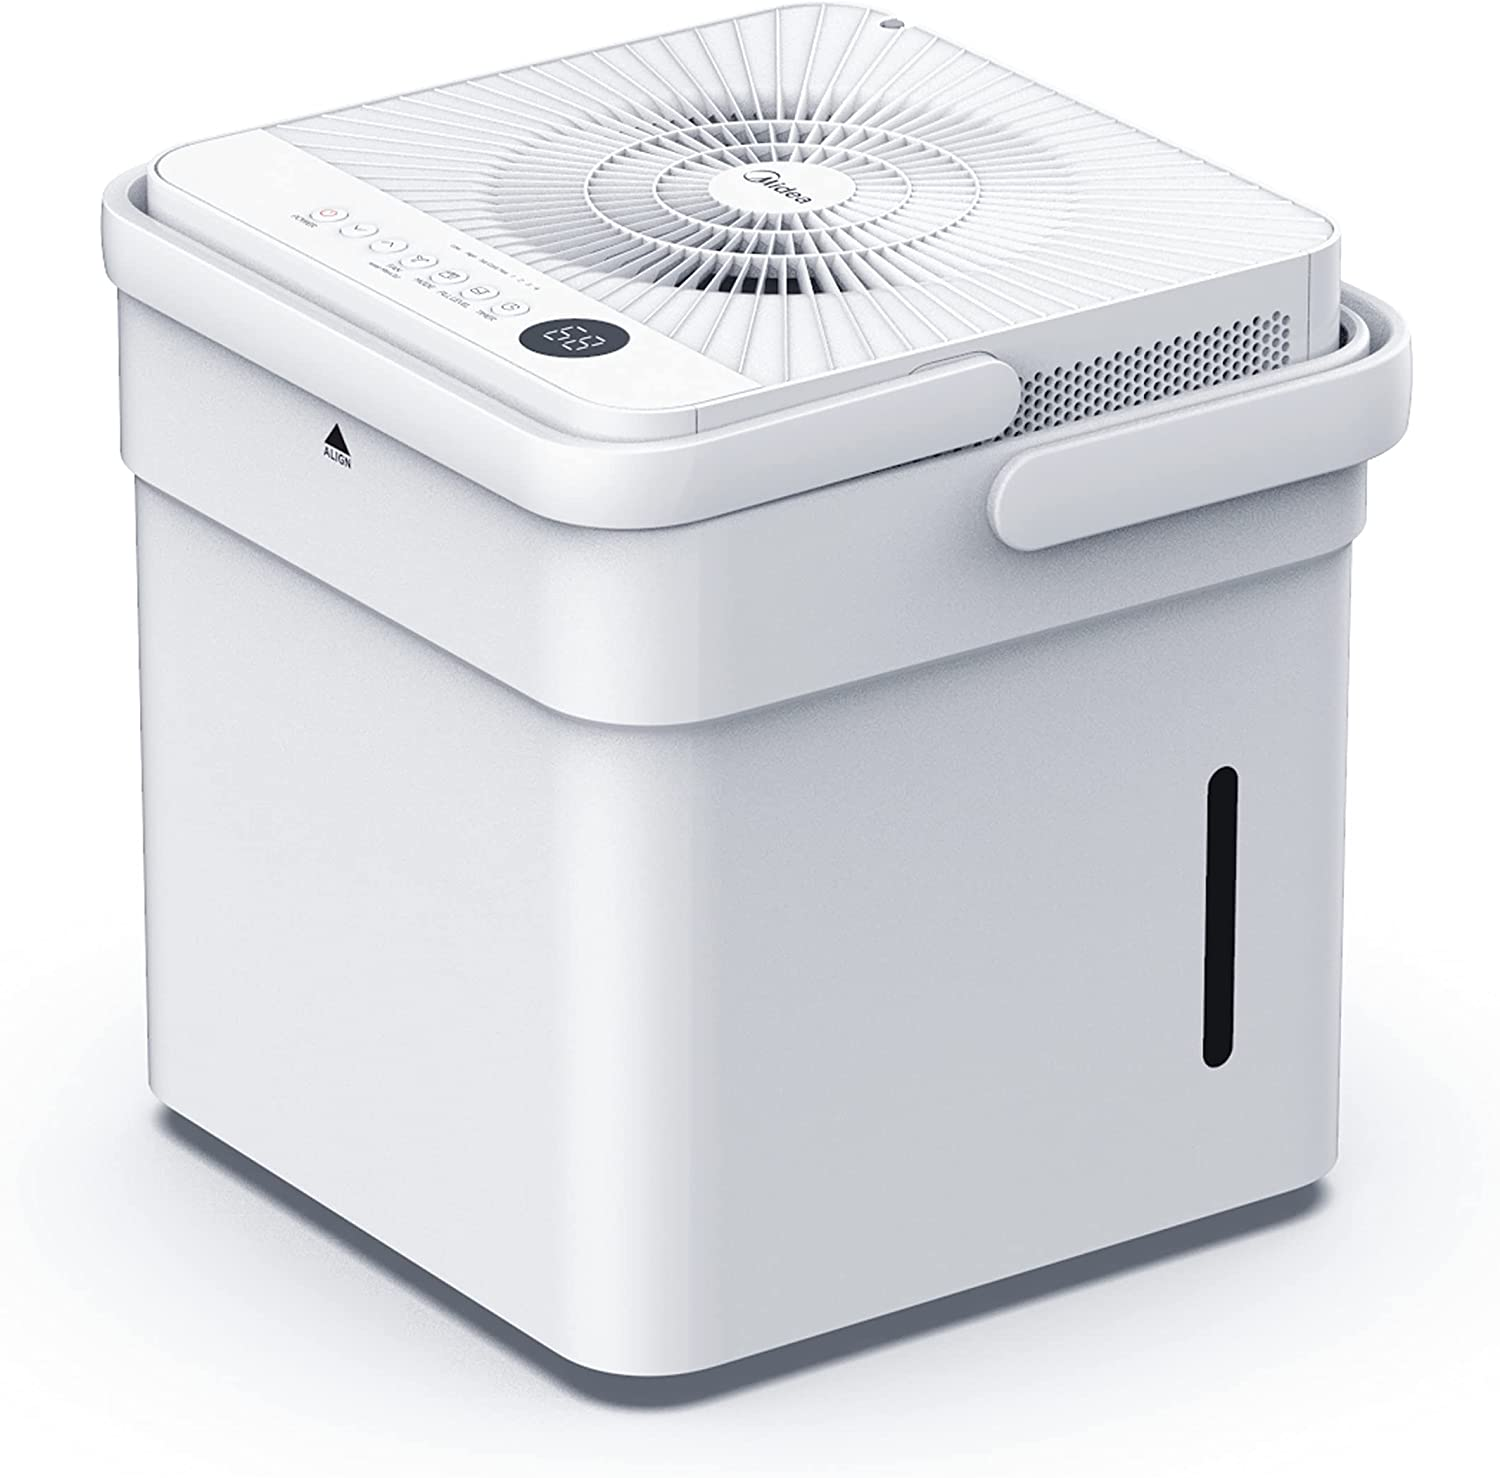 Midea Cube Long Beach Mall 35 Pint Dehumidifier with Smart Translated 50 3 up to For Wi-Fi